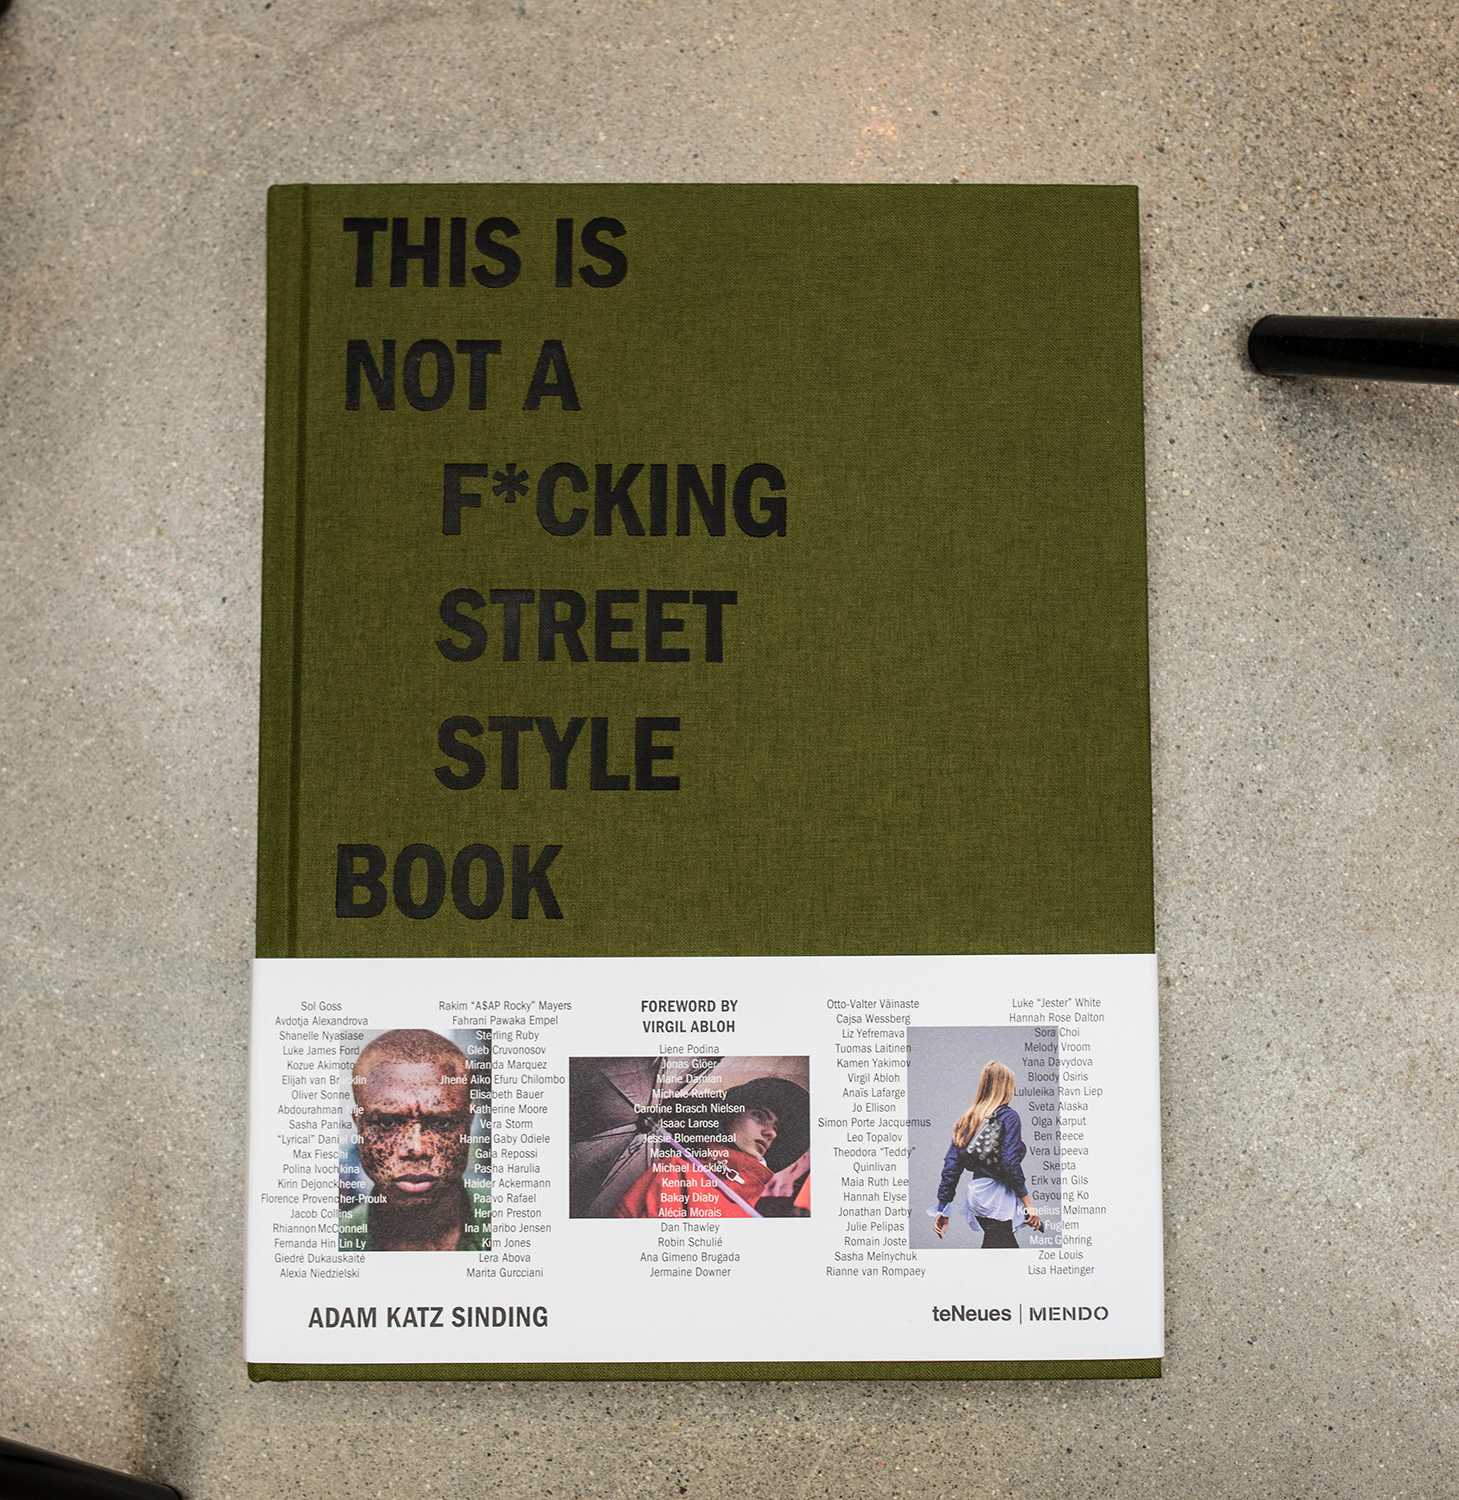 This is NOT a F*cking Street Style Book Review - FilterGrade